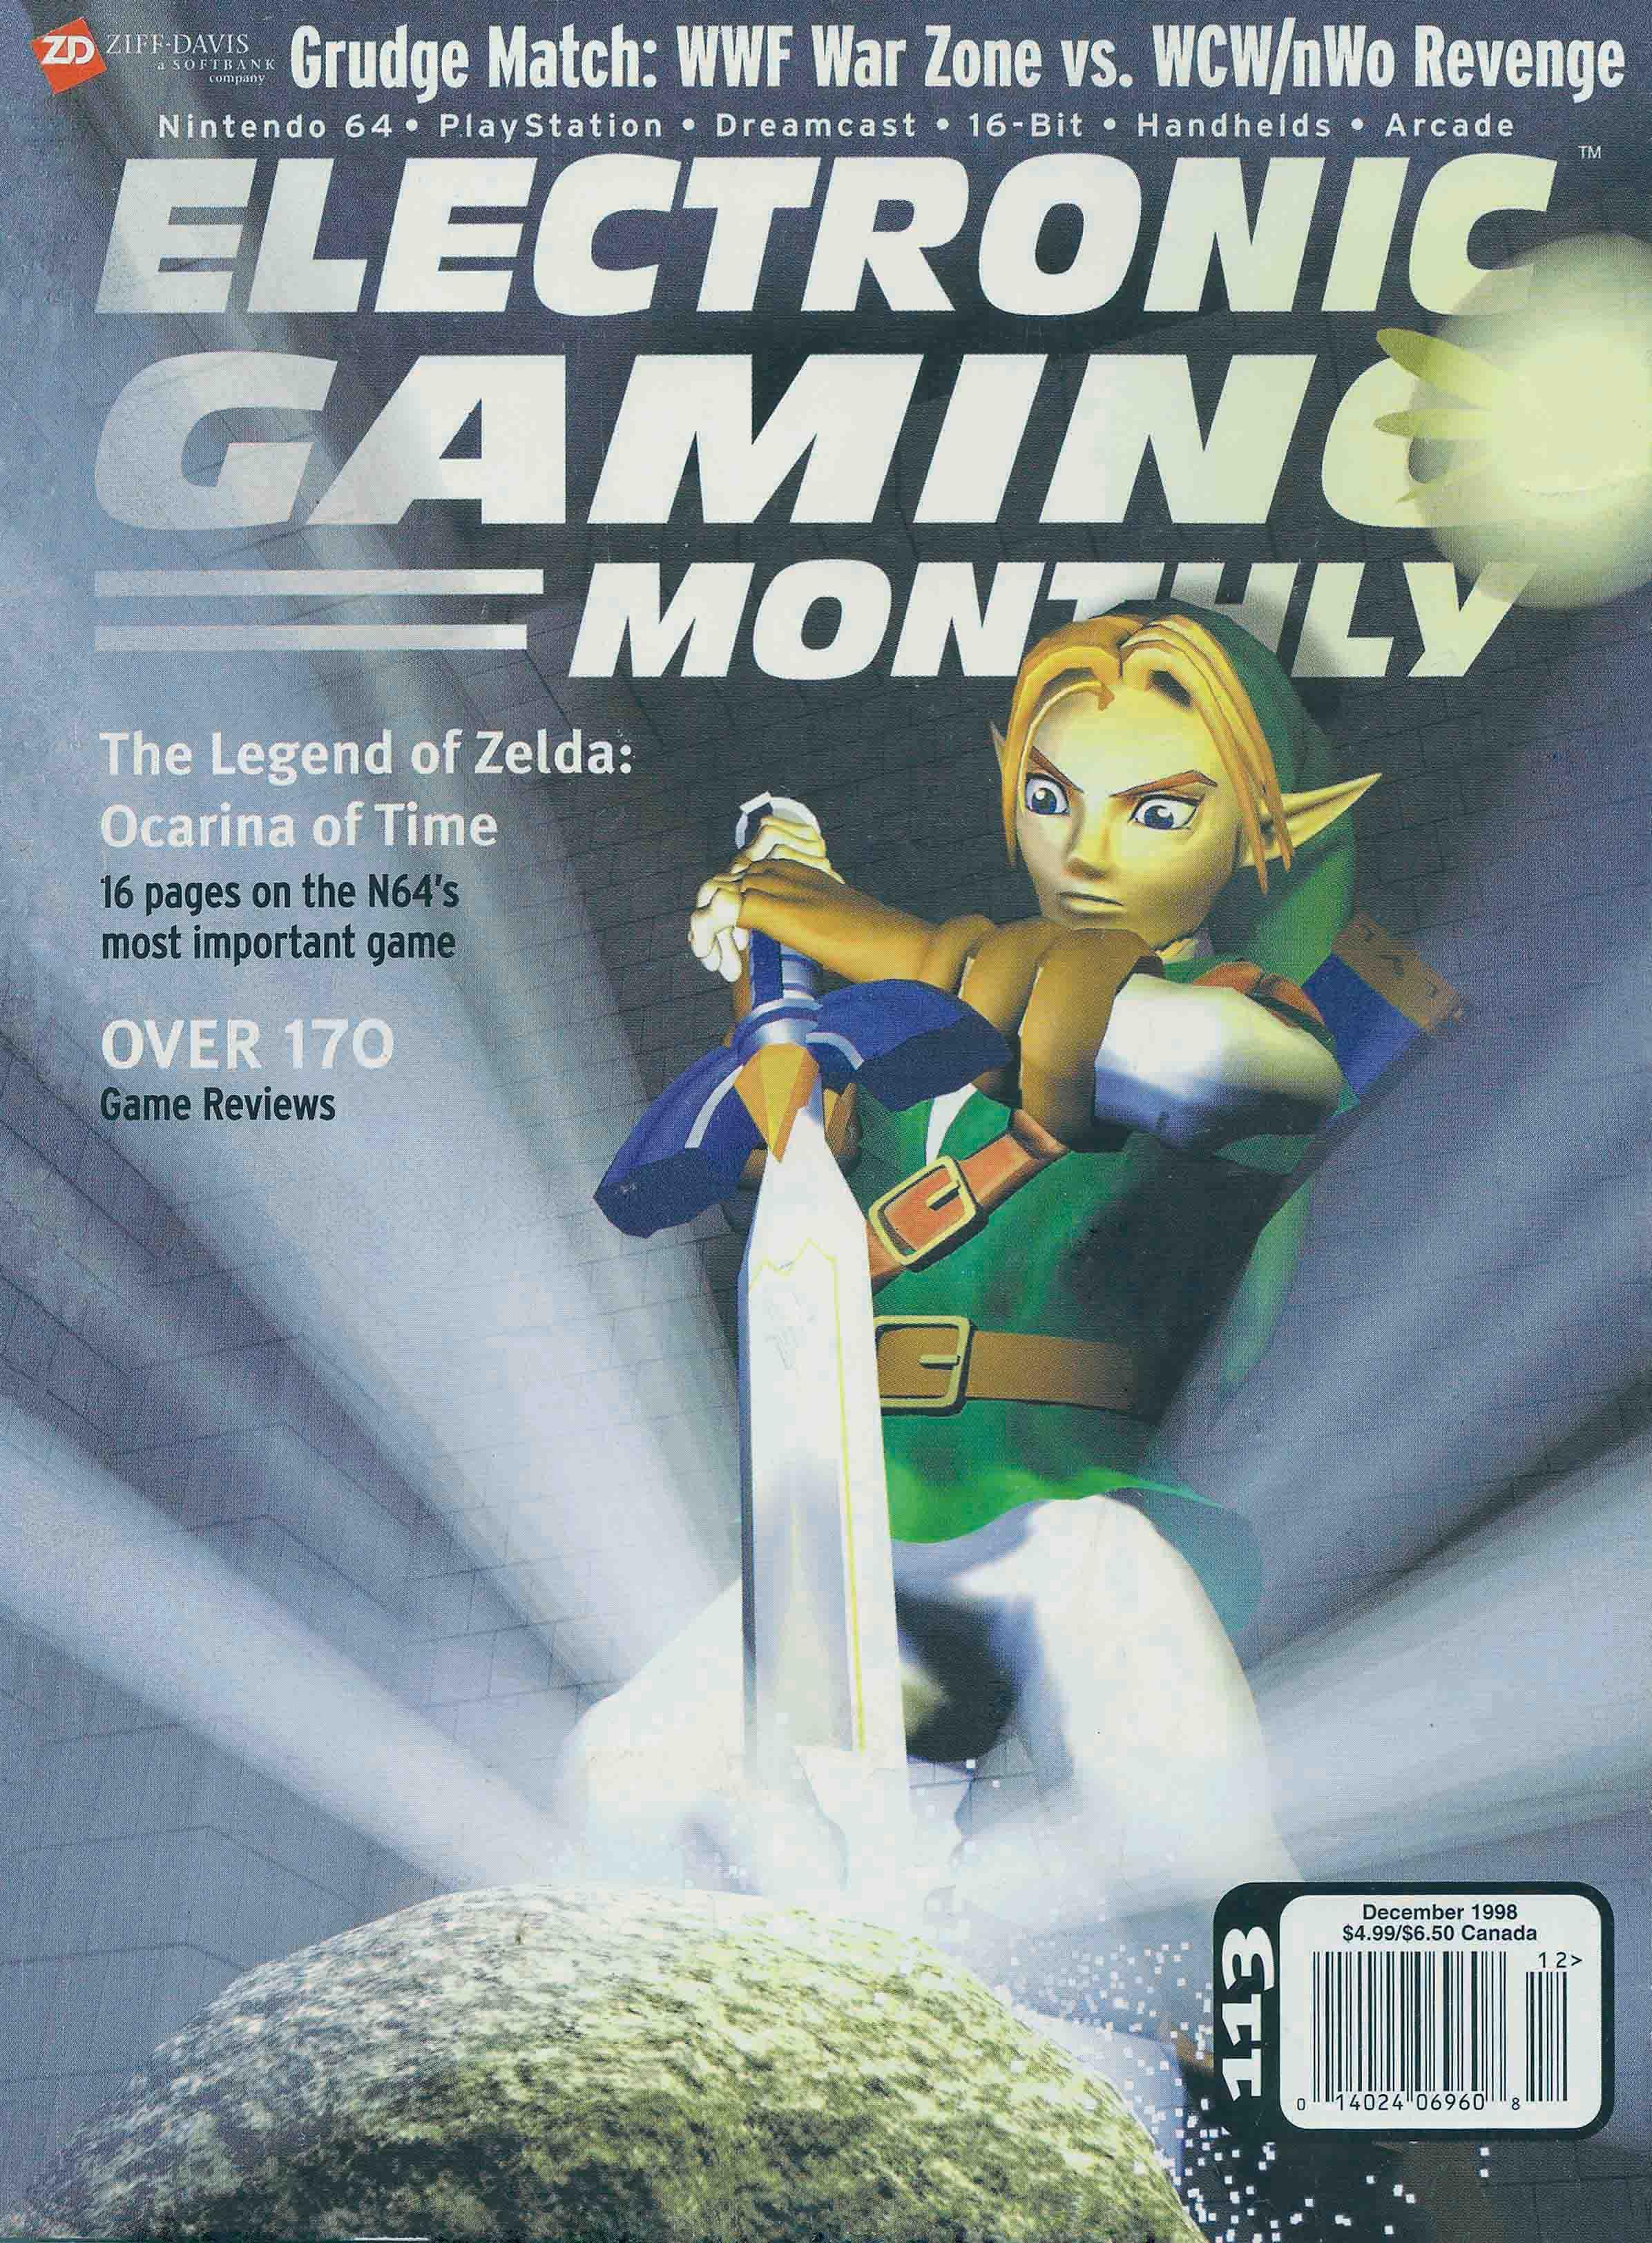 Electronic Gaming Monthly Issue 113